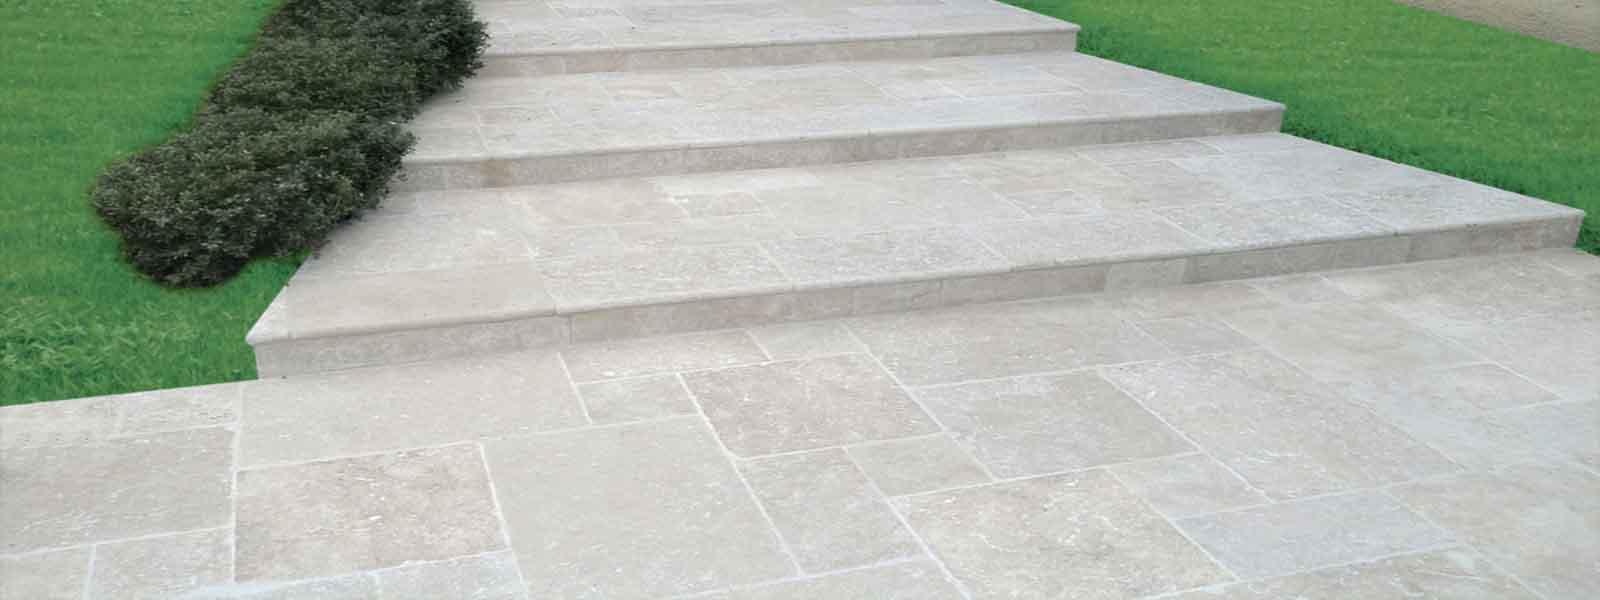 Carrelage ext rieur travertin en pierre naturelle pour for Plinthes carrelage exterieur